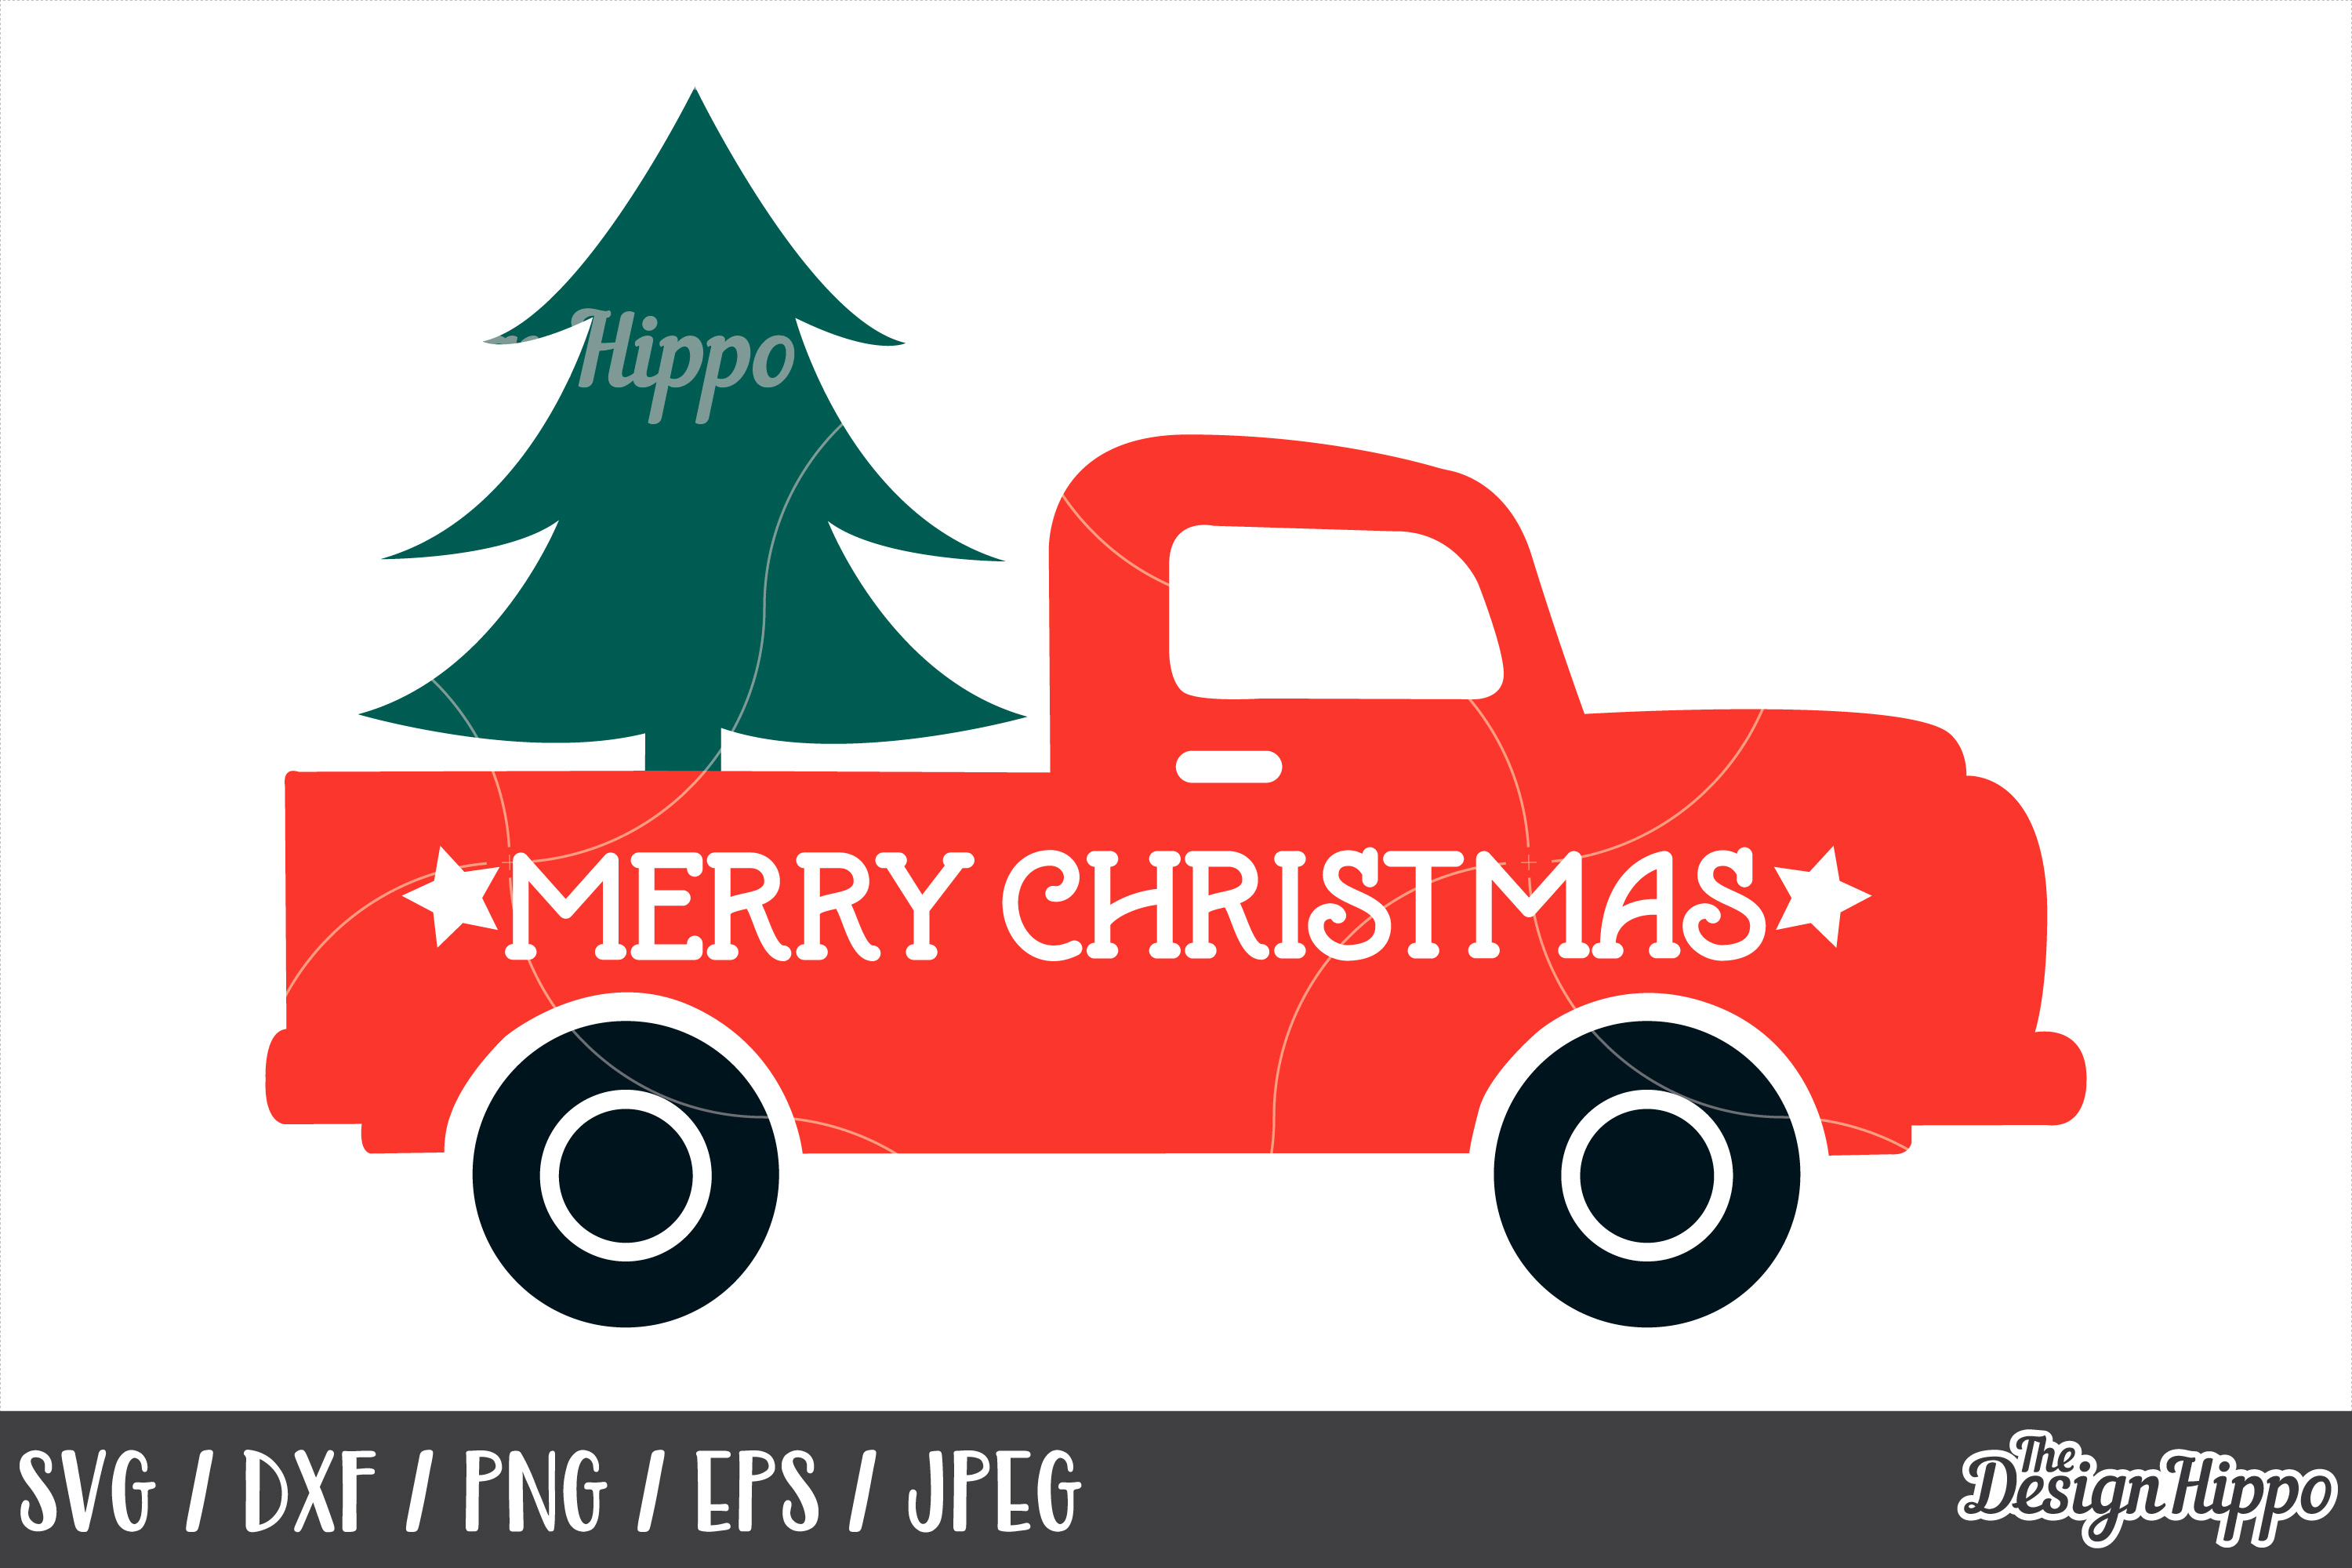 Merry Christmas SVG Bundle, Christmas SVG, PNG, DXF Cut File example image 3